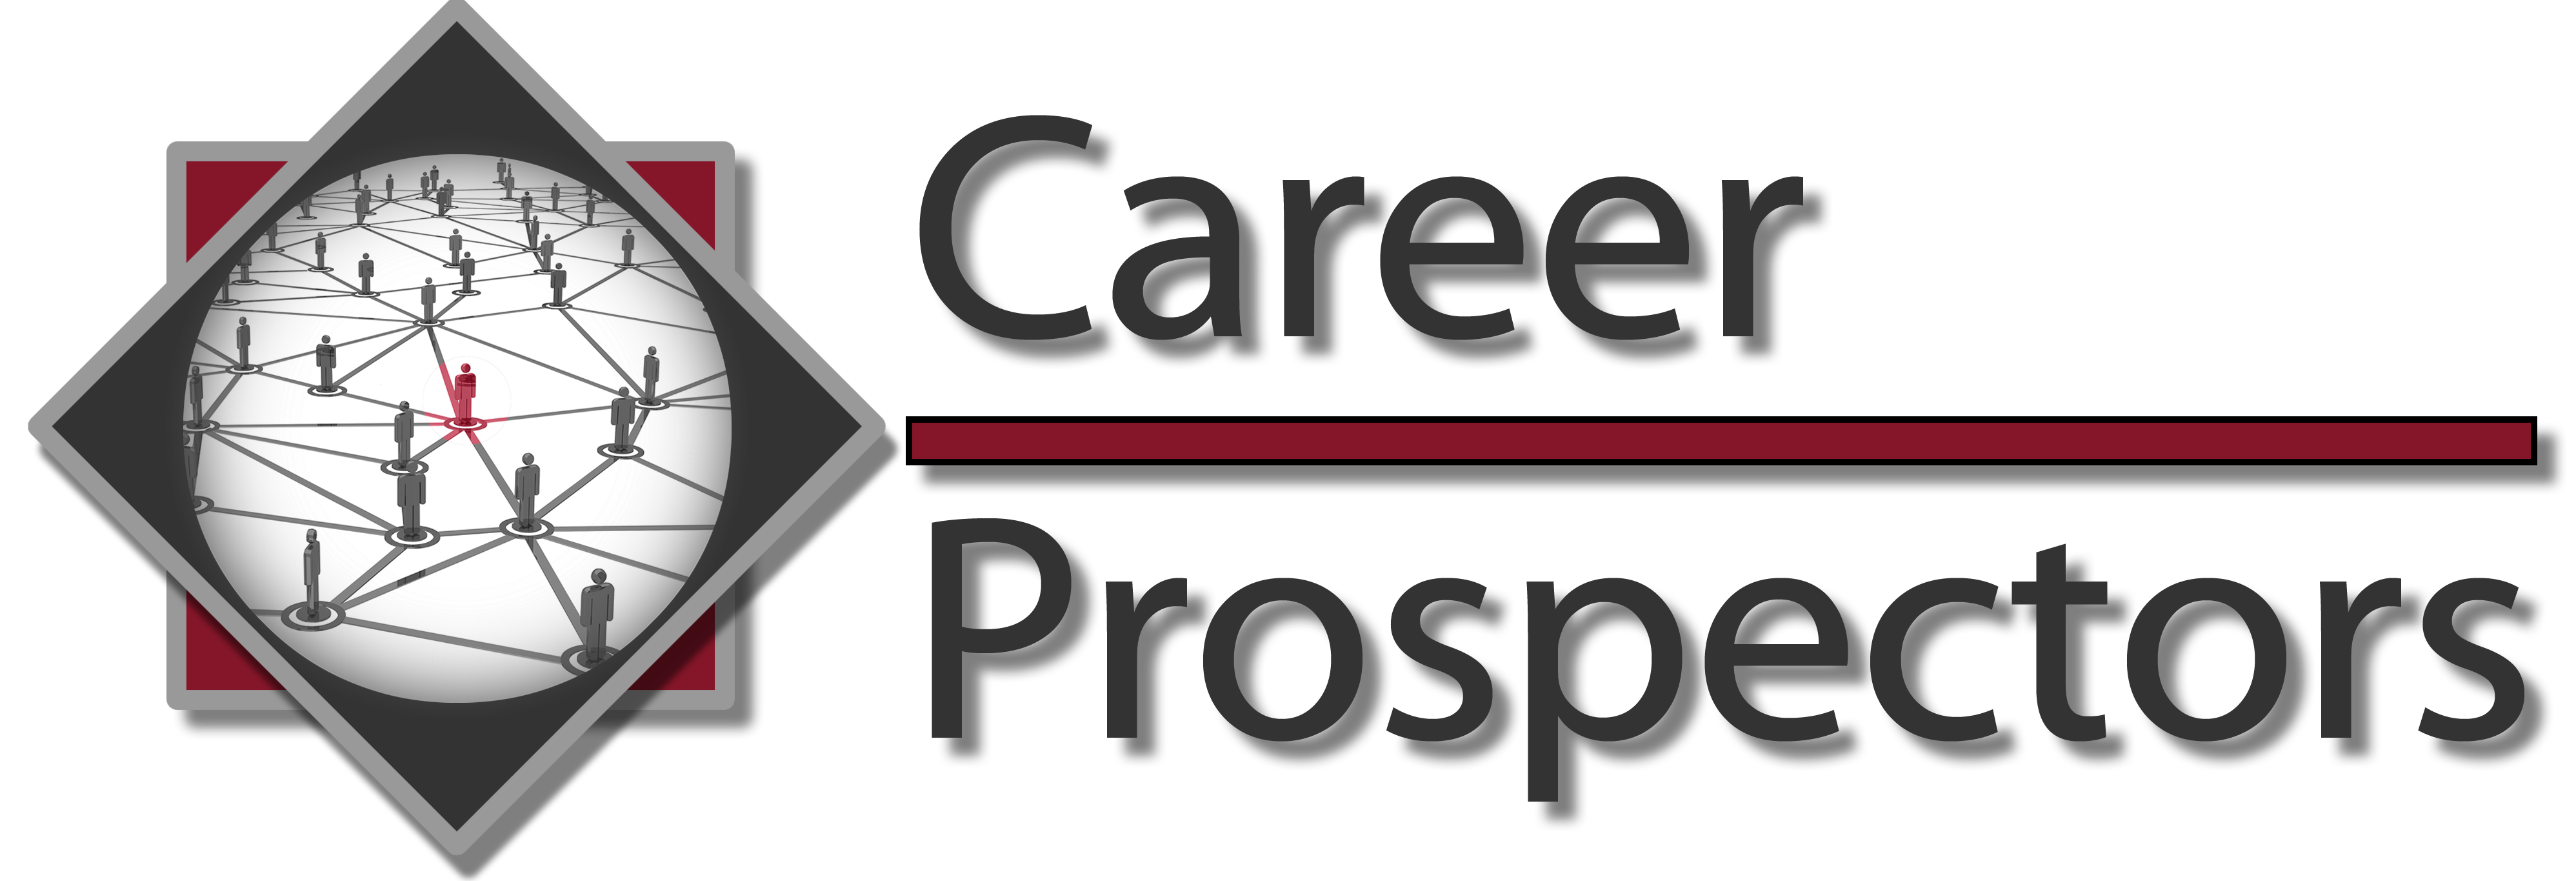 Career Propectors